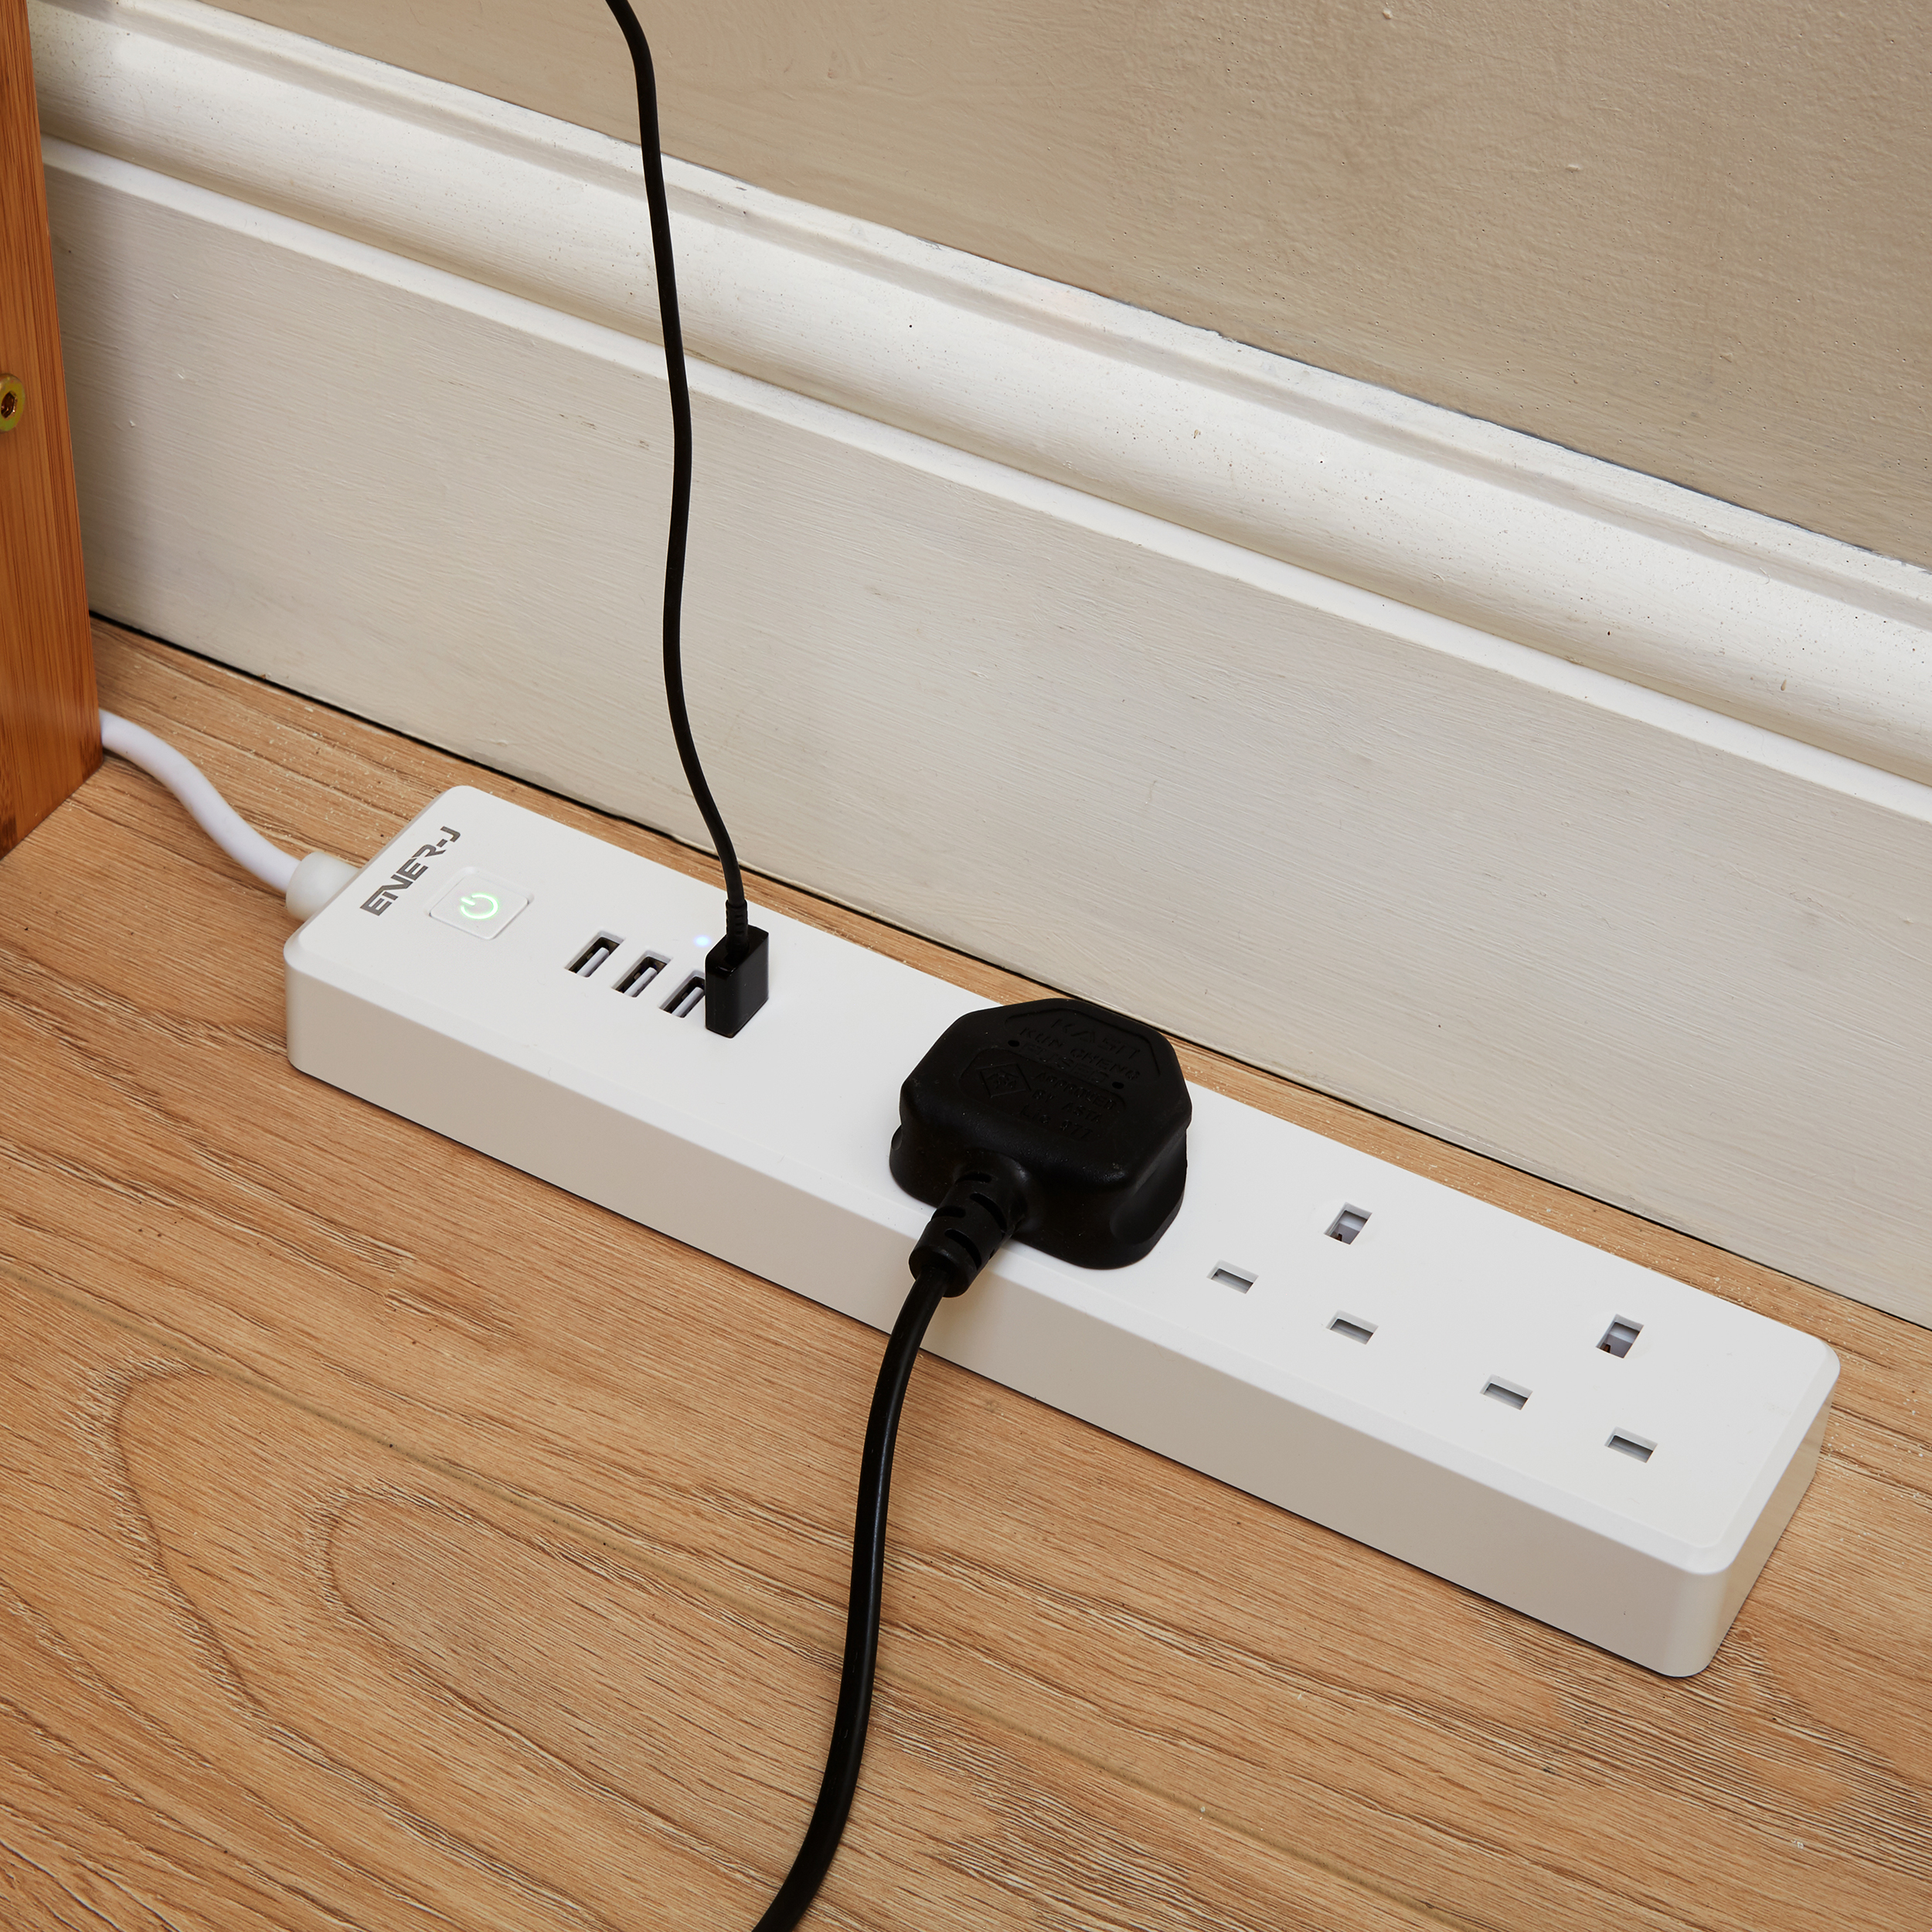 Ener-J WiFi Power Extension Lead 1.8metre With 3 AC Ports And Surge Protector Ref SHA5207